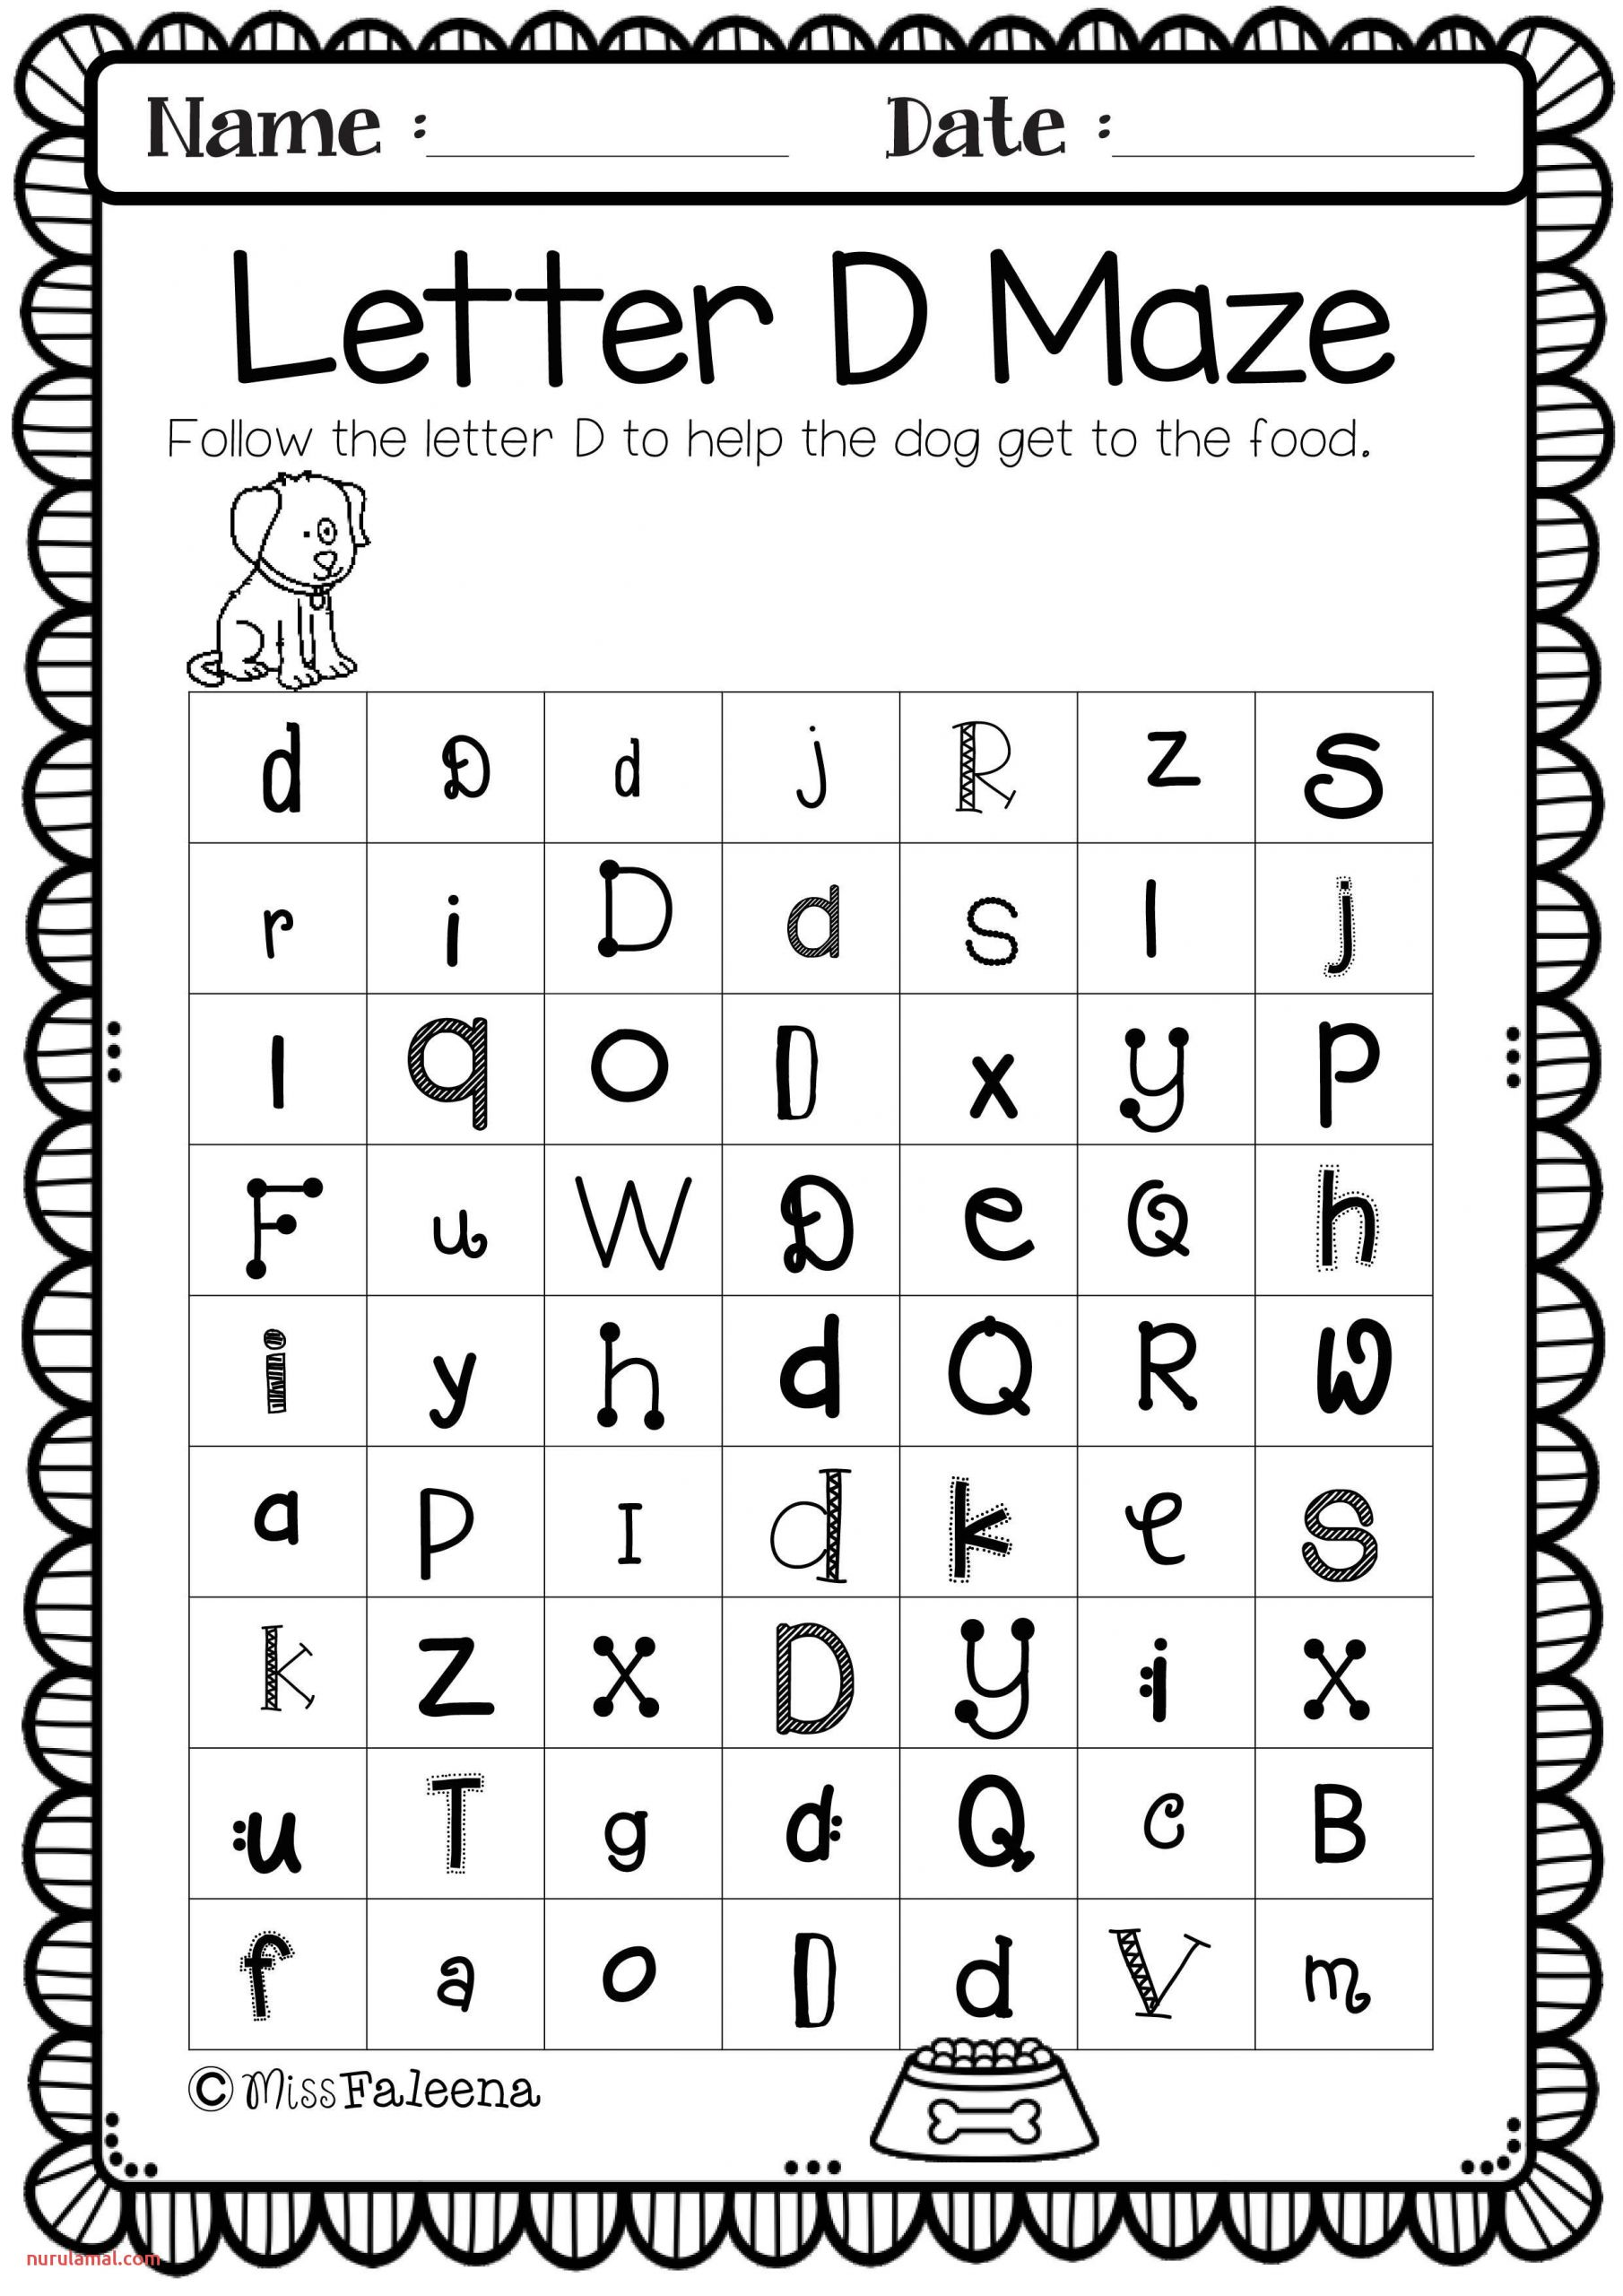 address worksheets for kindergarten kids halloween activities year olds best